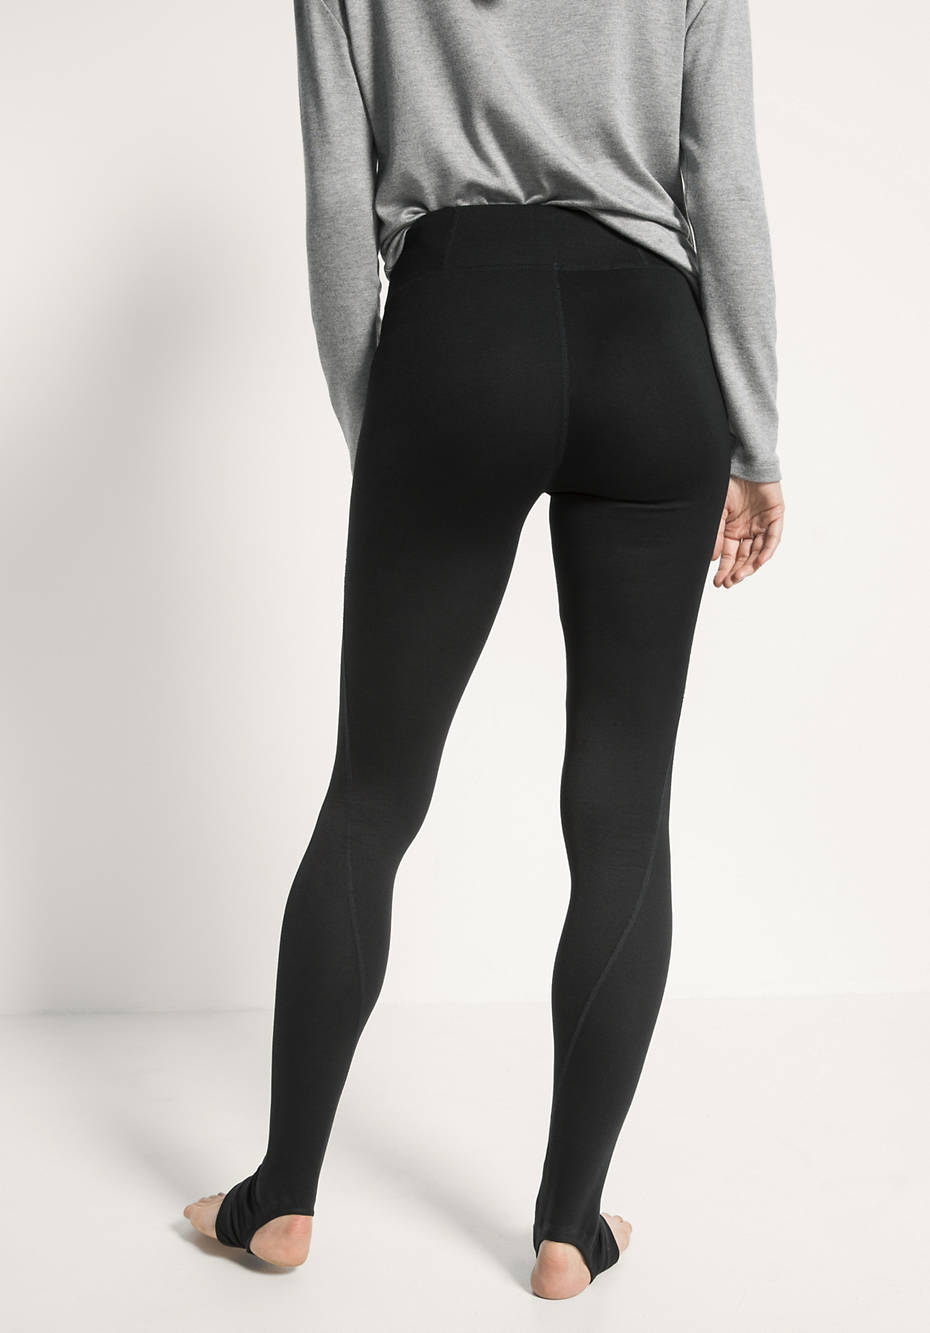 Yoga-Leggings aus Modal